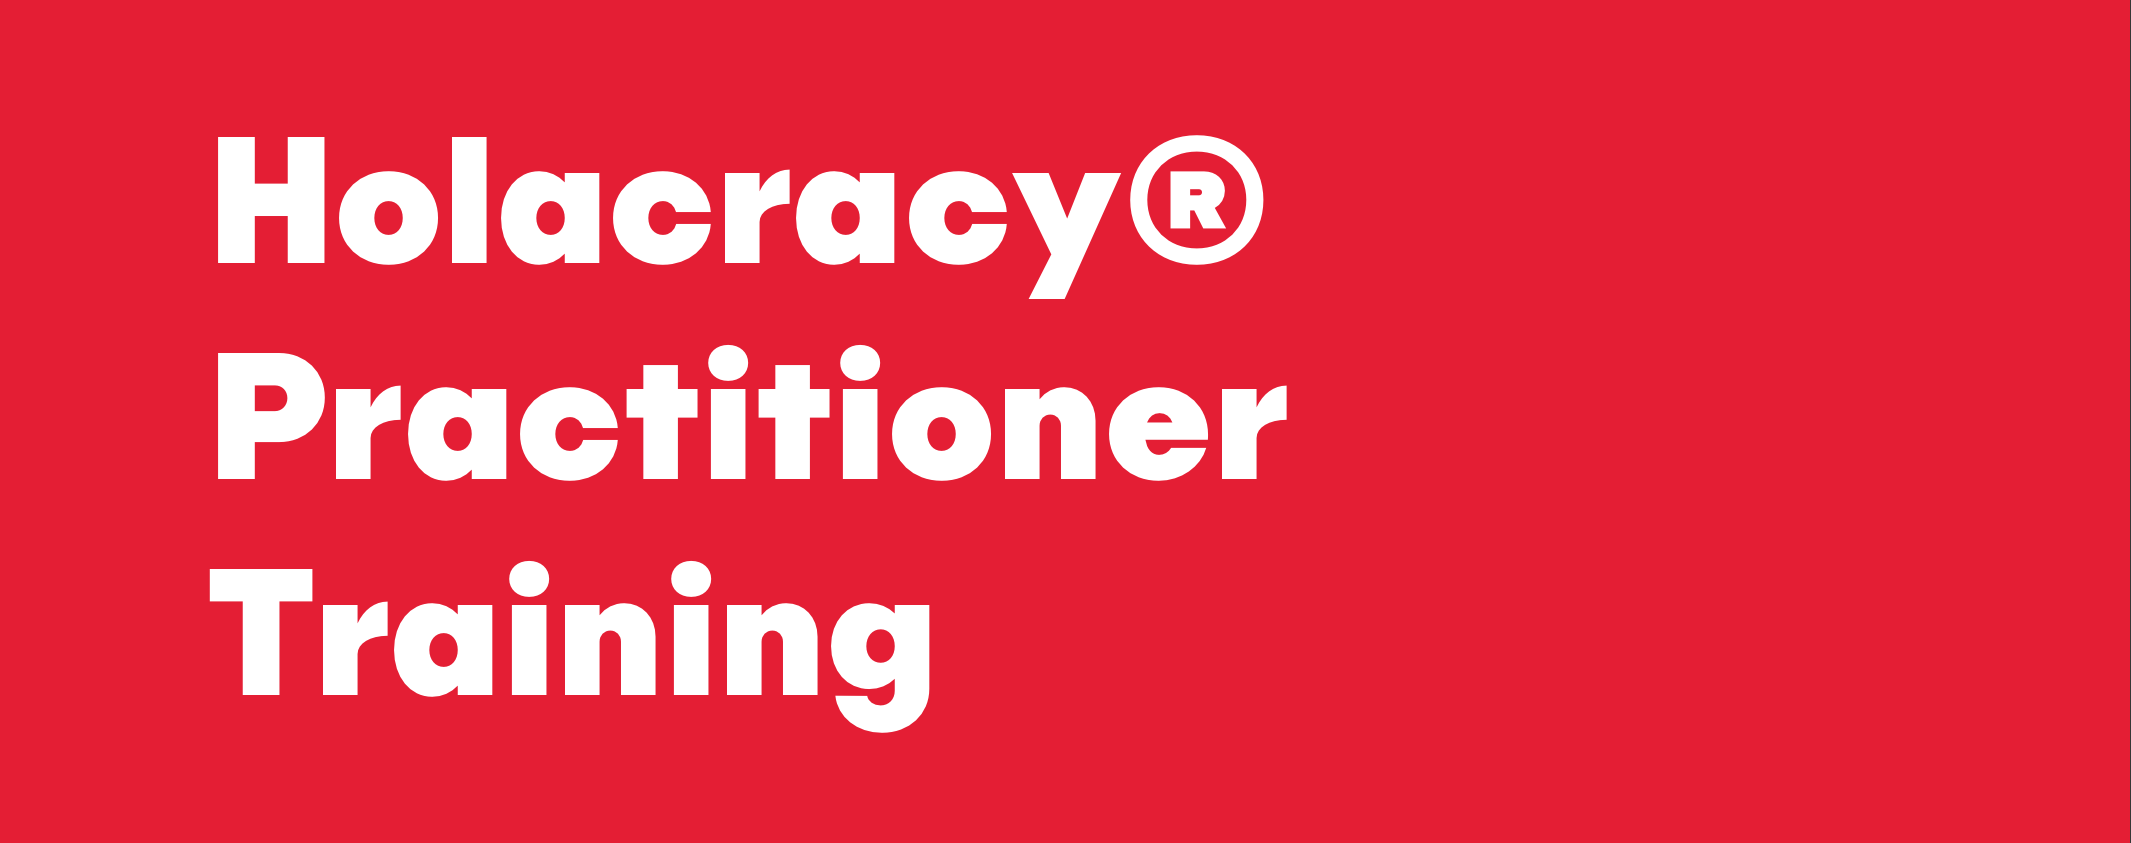 holacracy practitioner training